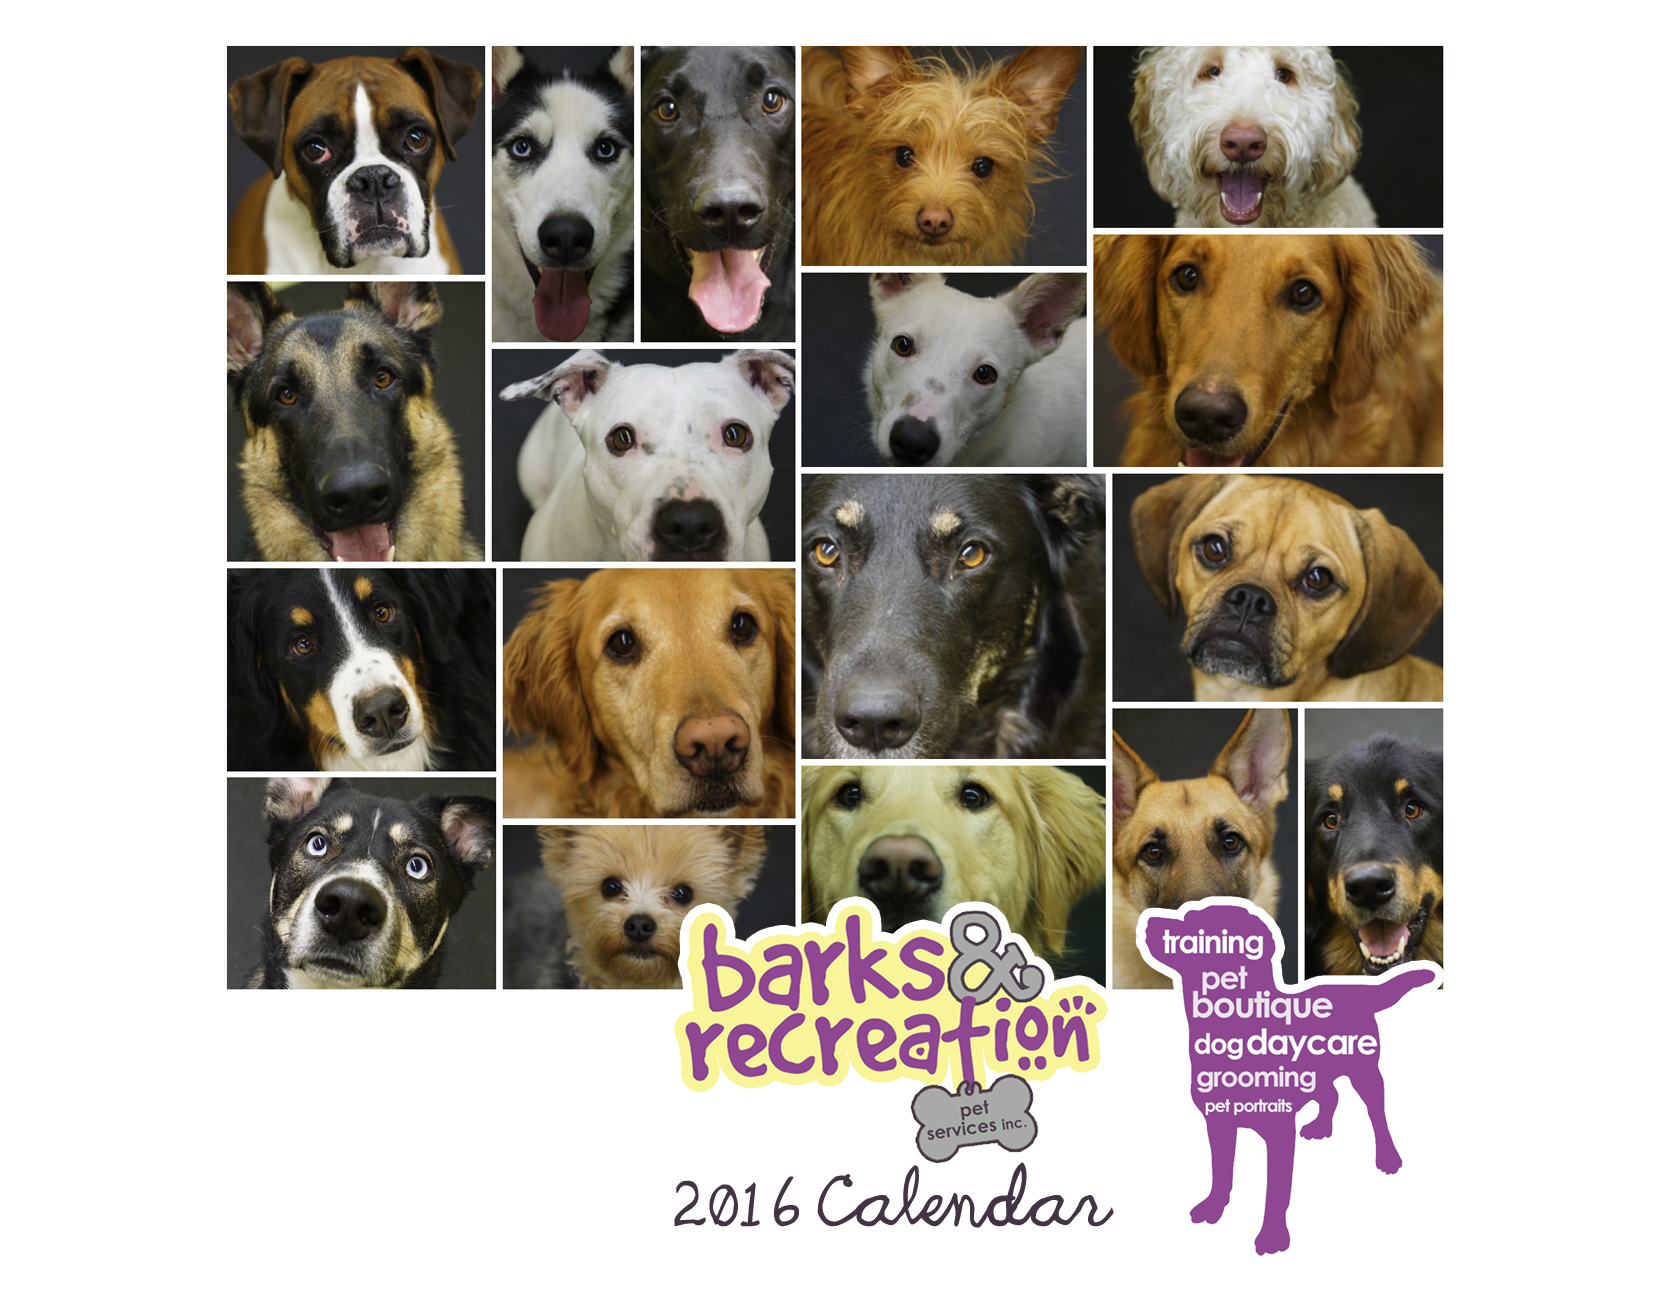 Barks and Recreation in Trail, BC 2016 Photo Wall Calendar